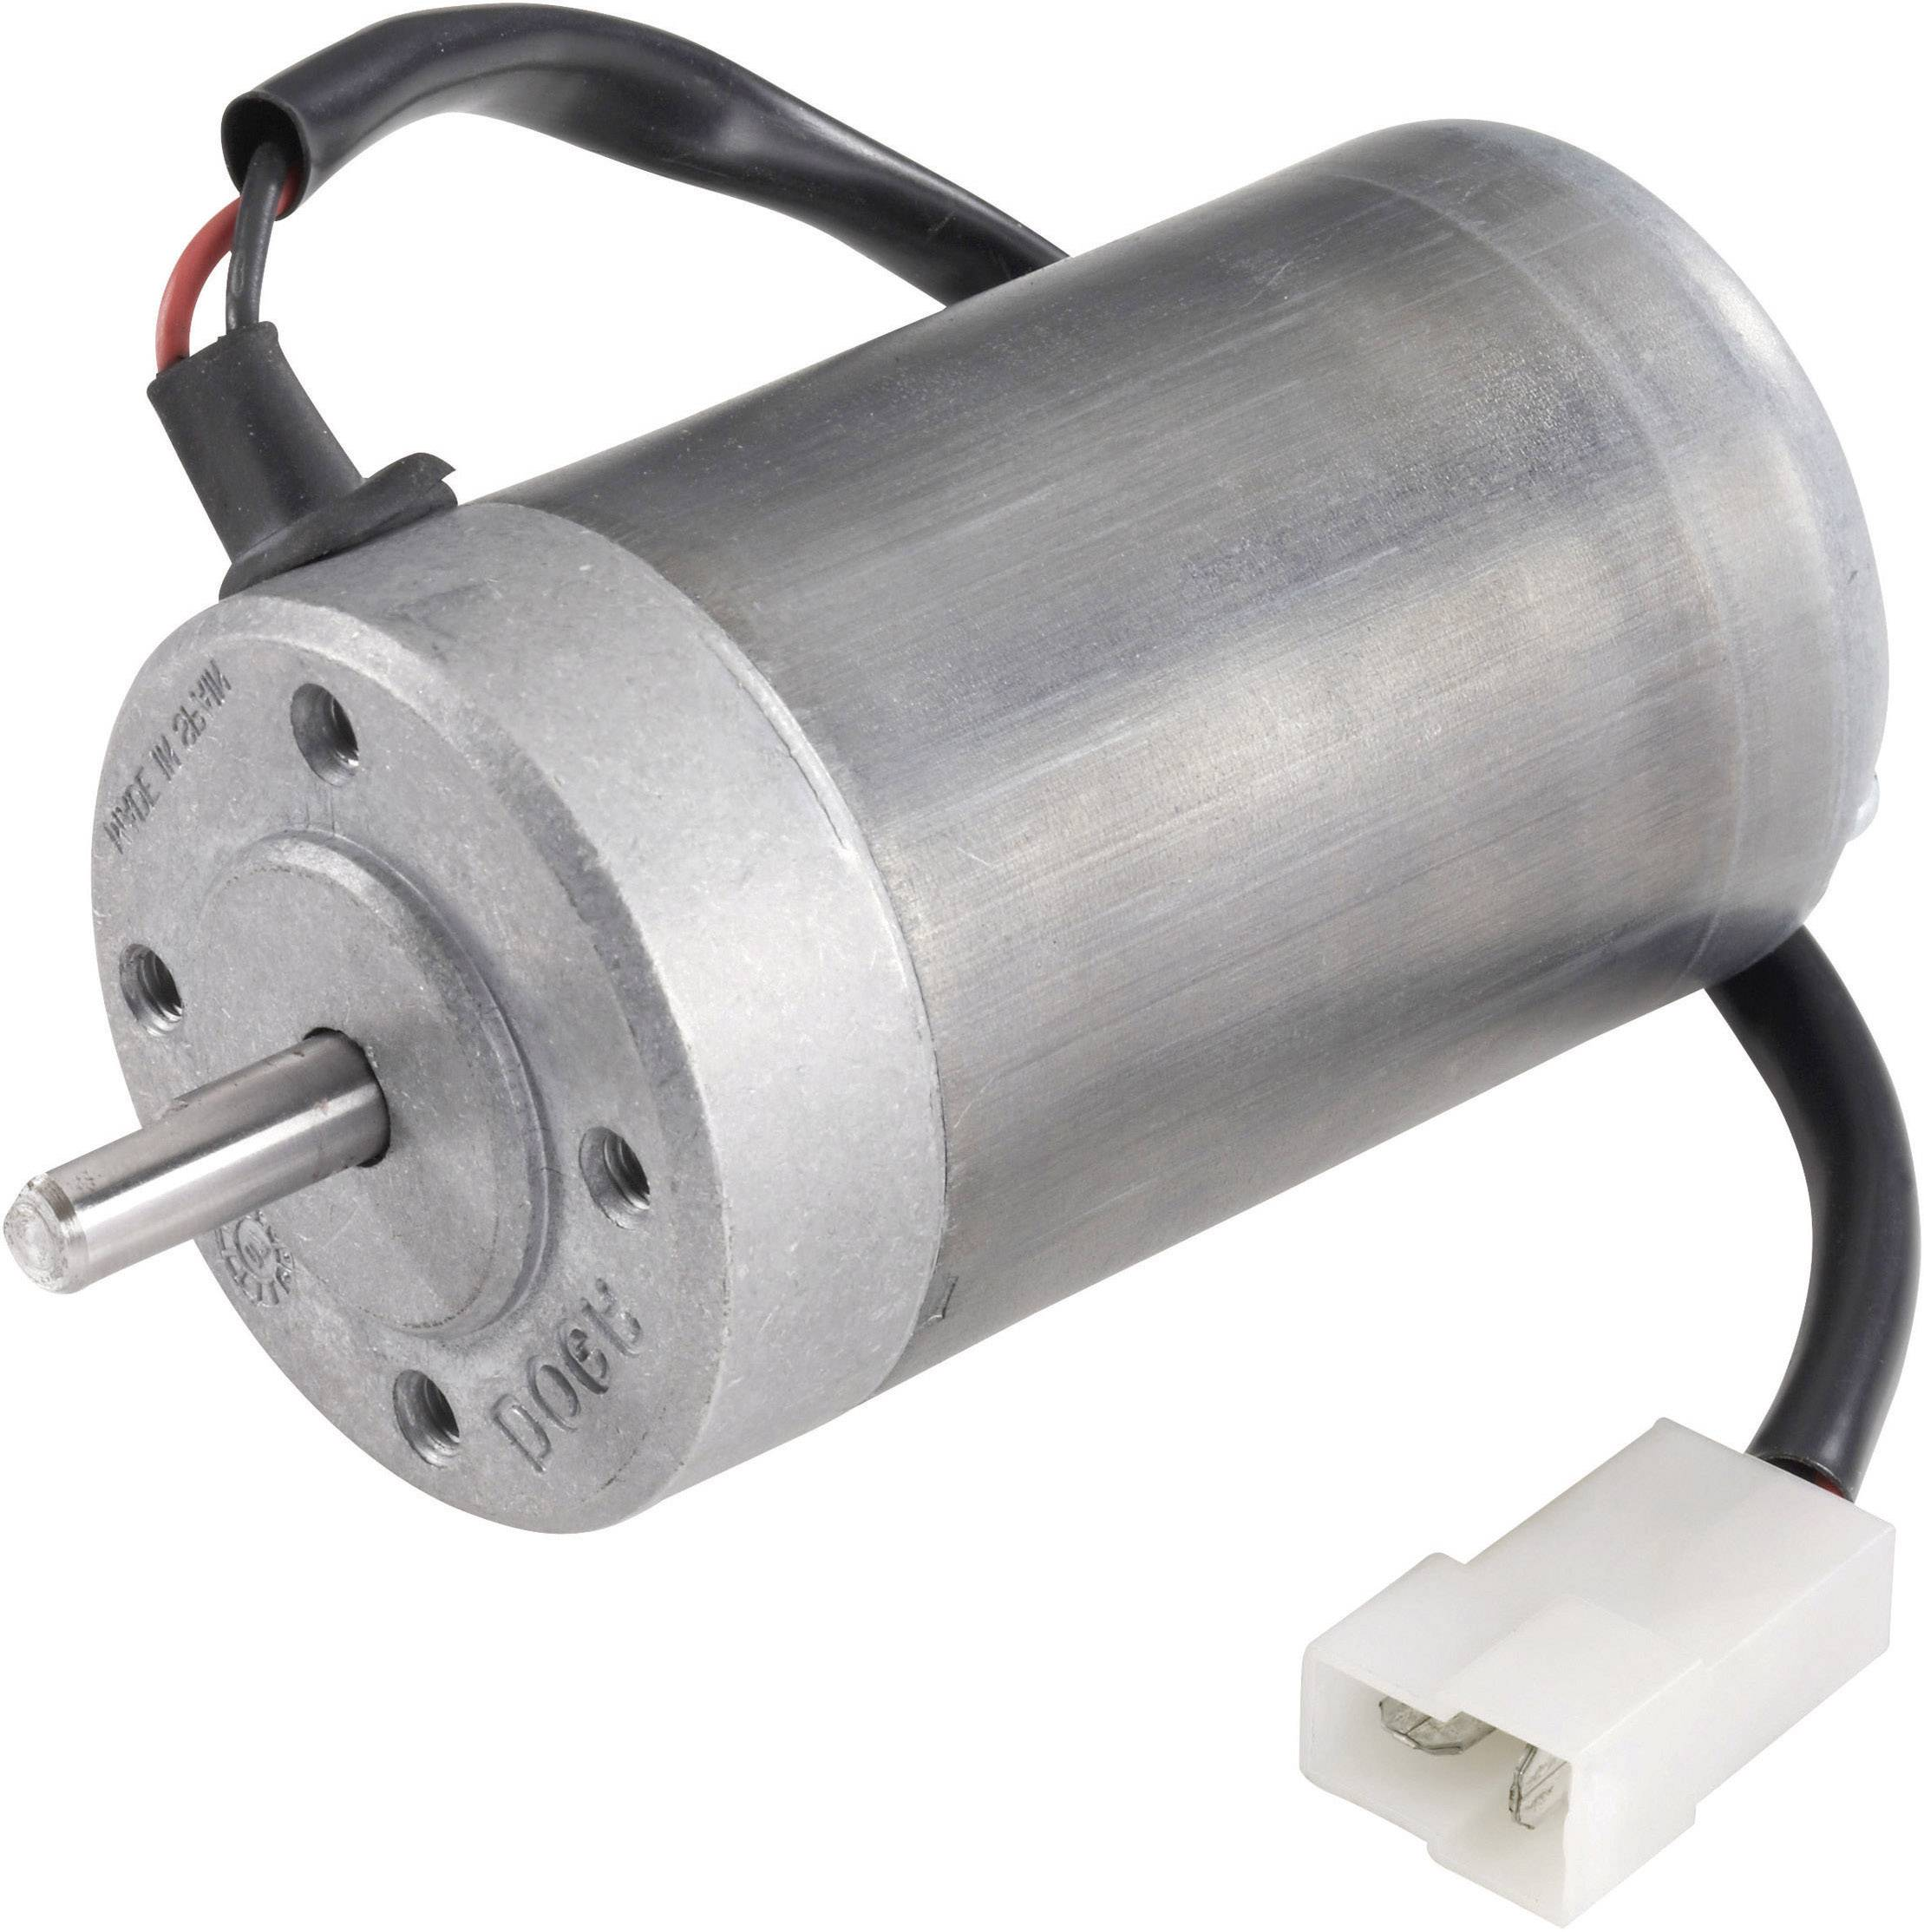 Motor DC DO 162,41010,2B0,00 SADA CCI